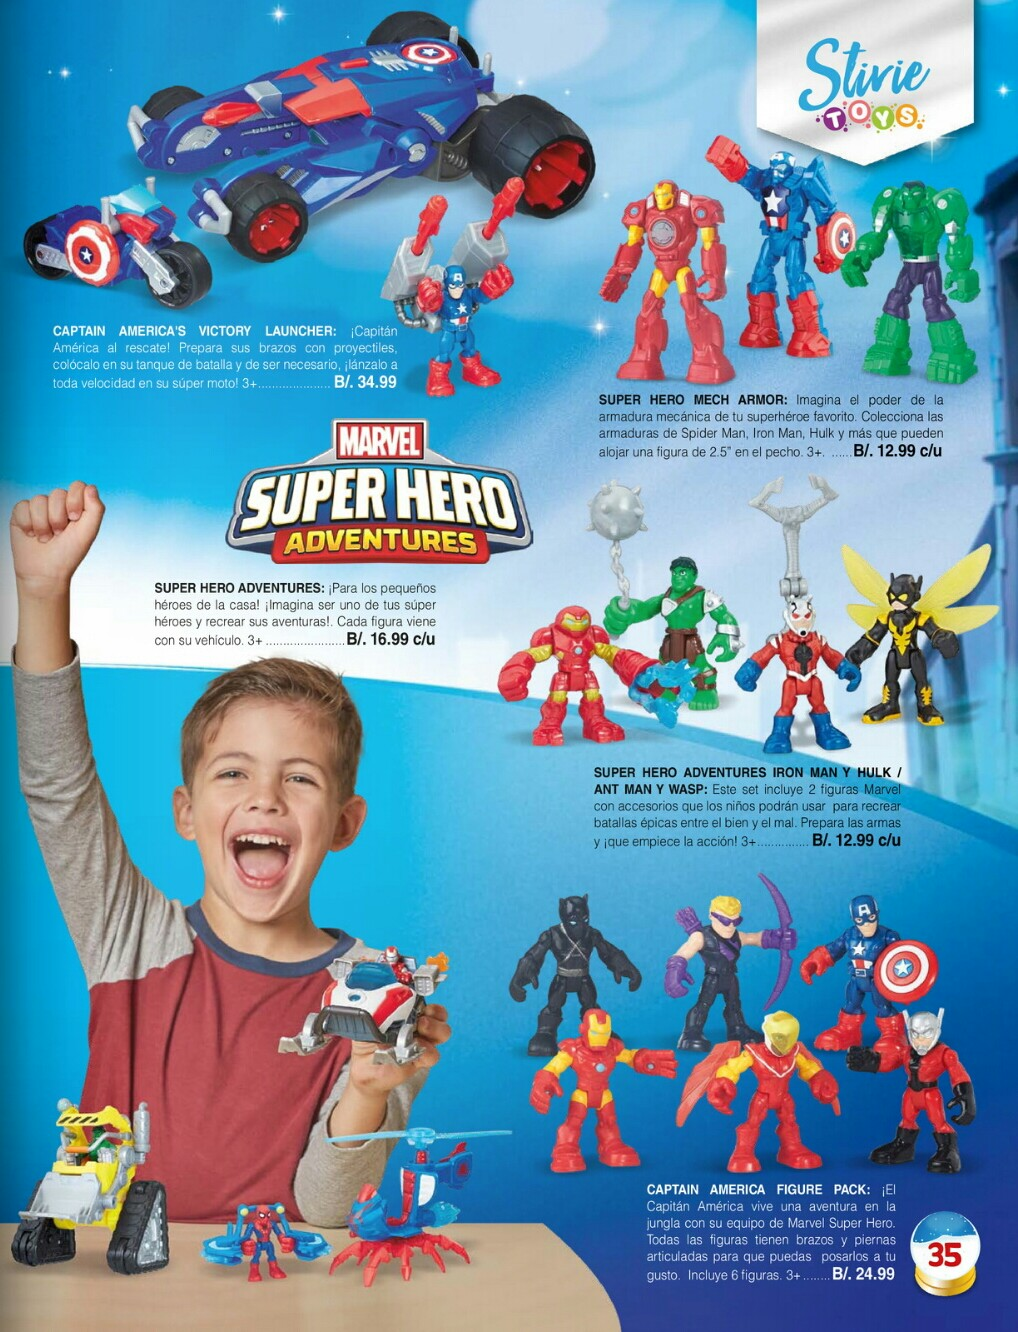 Catalogo juguetes Stivie toys 2018 p35